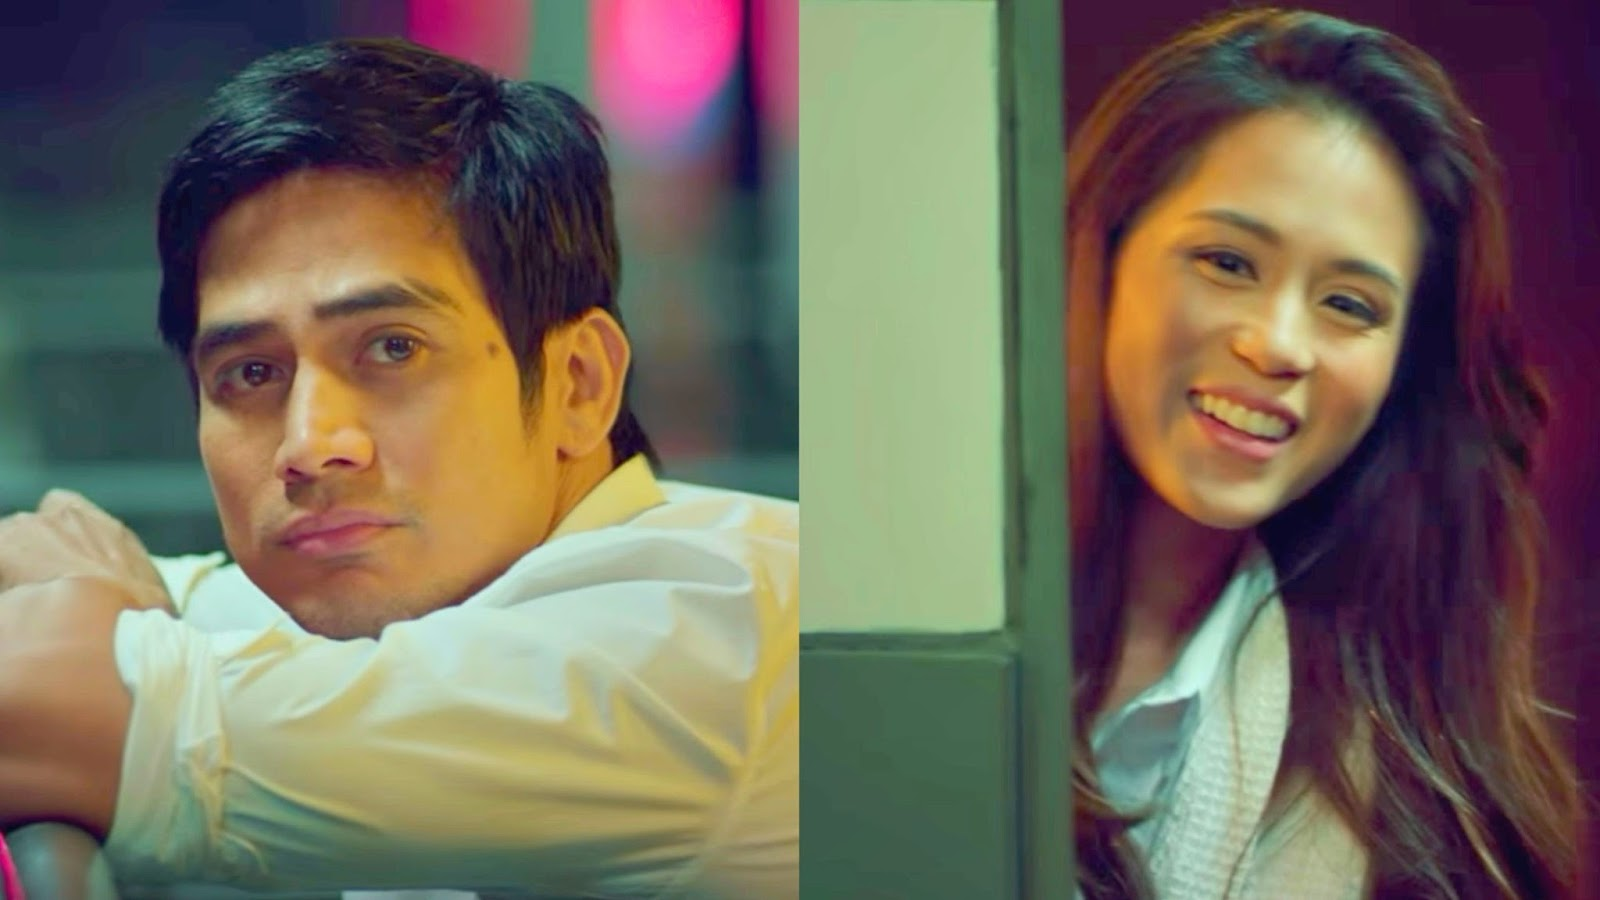 Piolo Pascual as Mark and Toni Gonzaga as Carmina in 'Last Night'